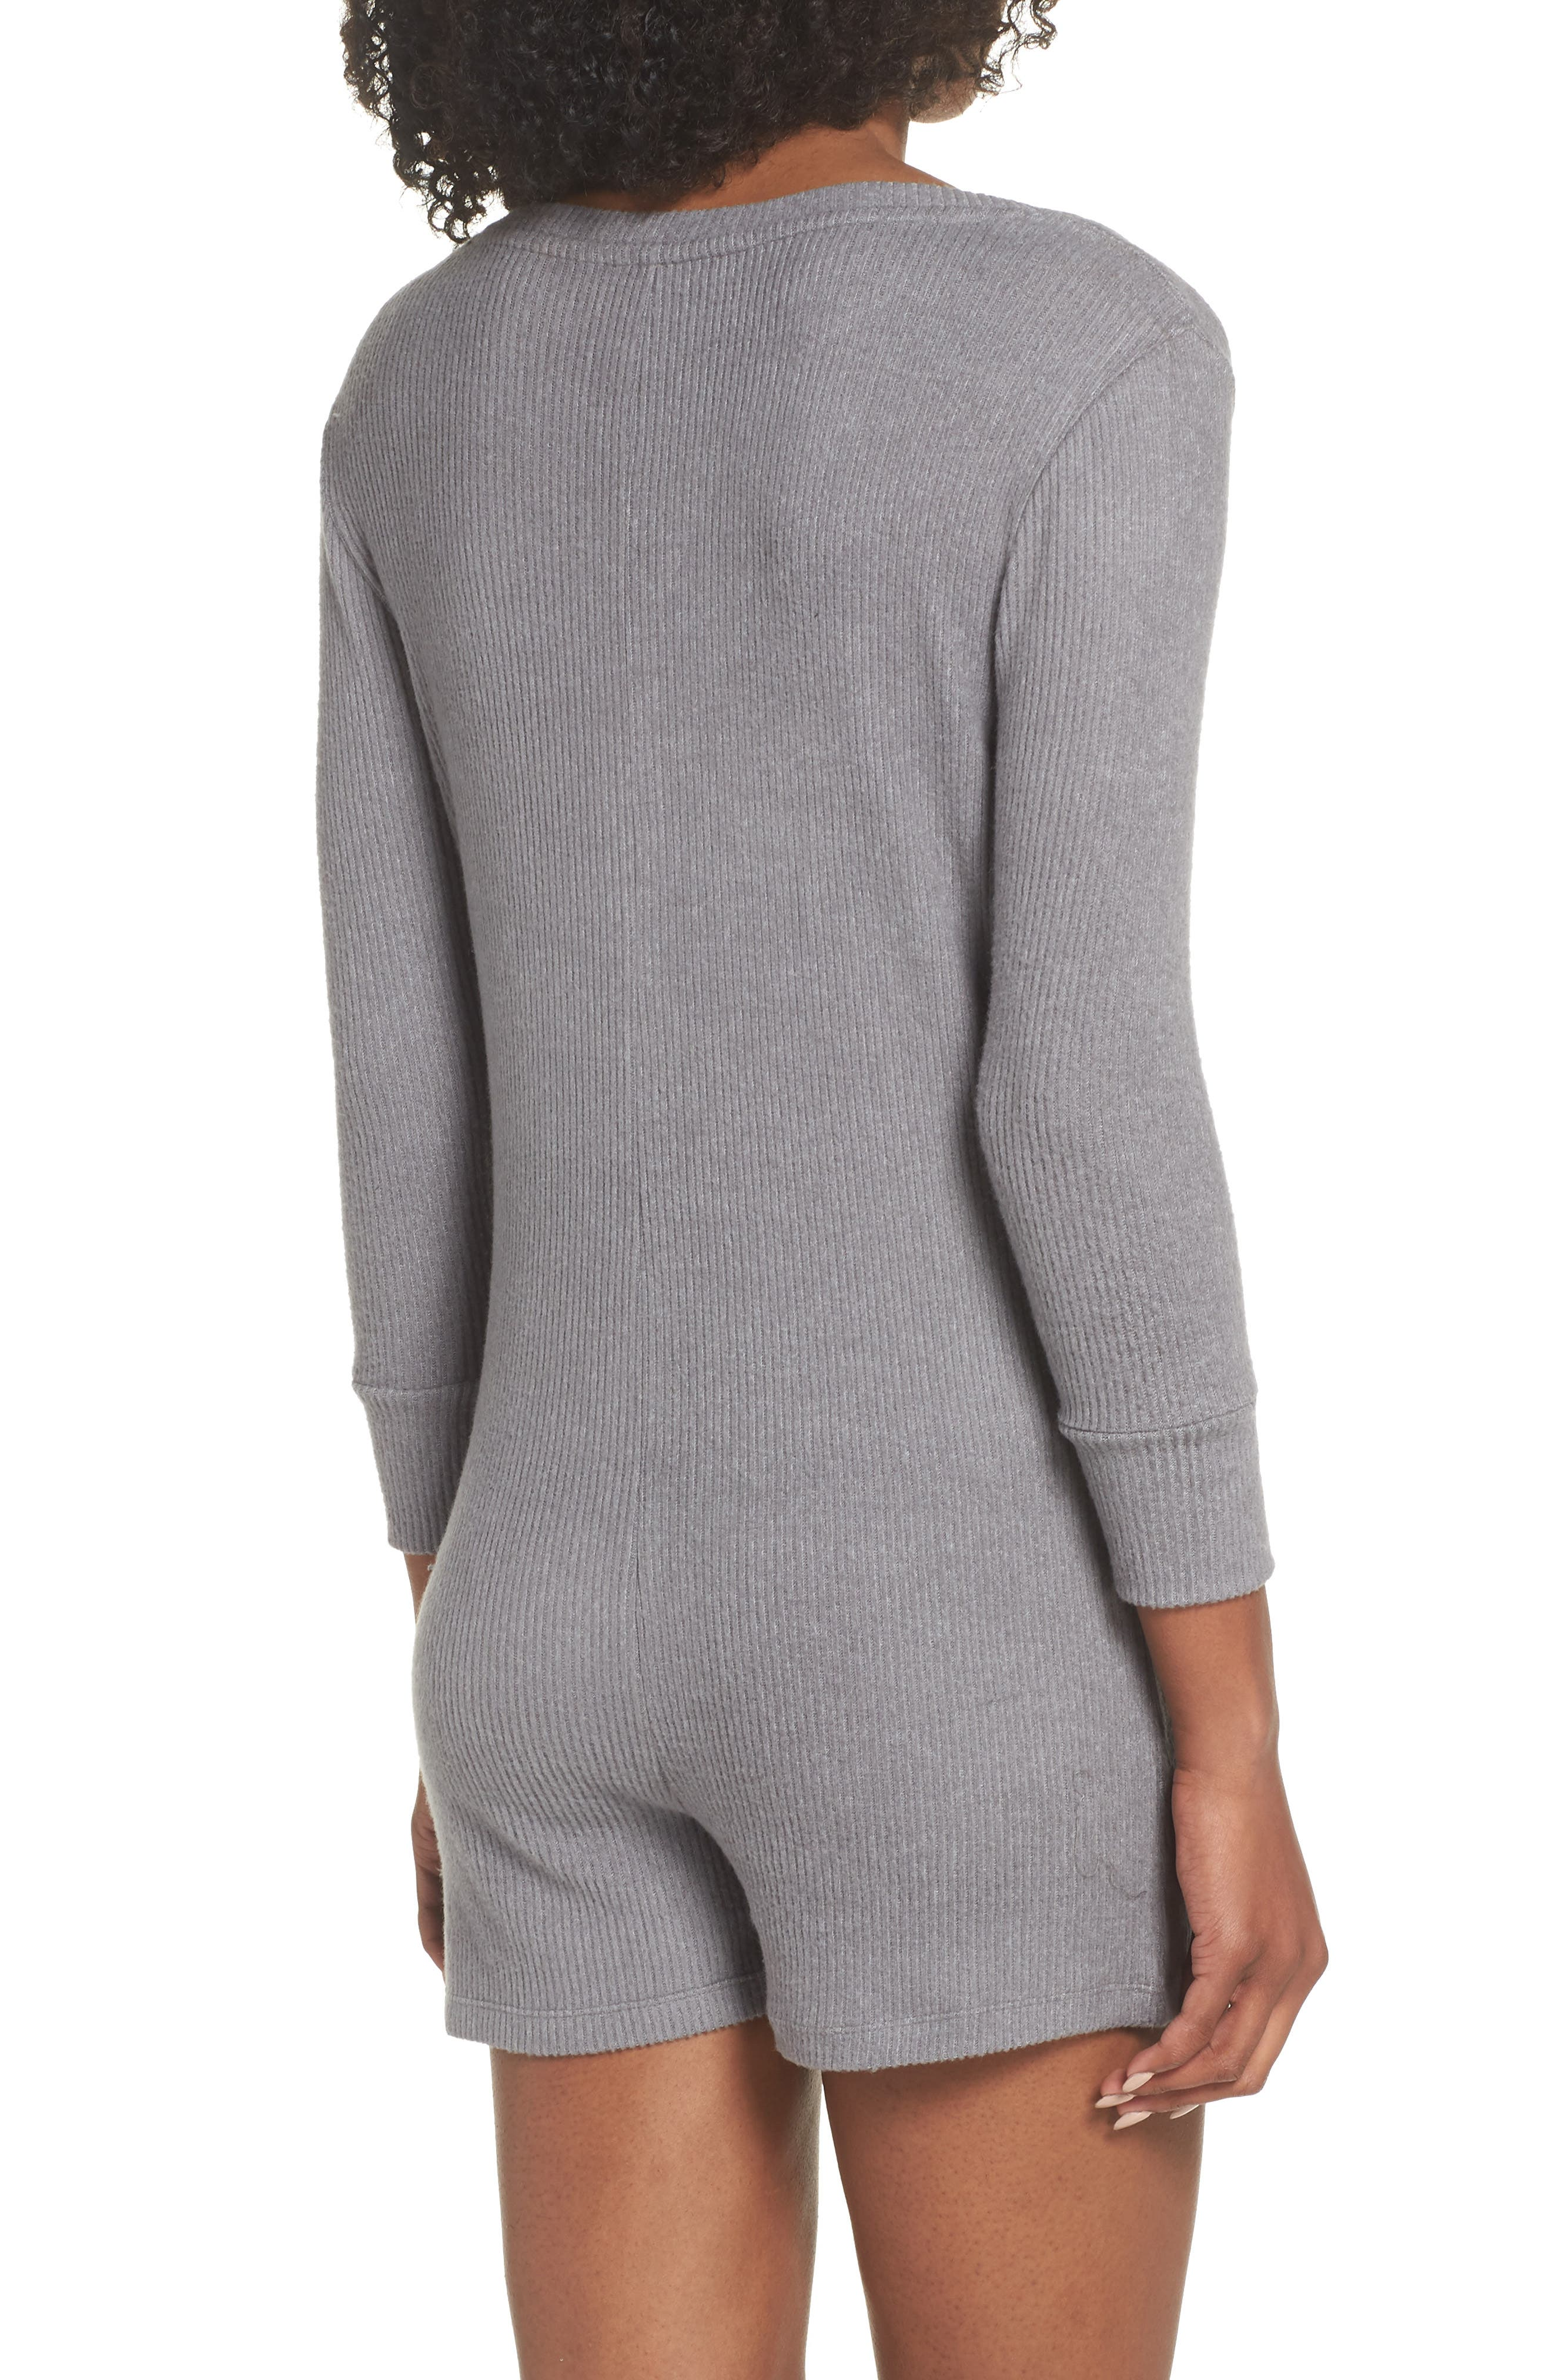 Joes' Henley Romper,                             Alternate thumbnail 2, color,                             HEATHER GRAY